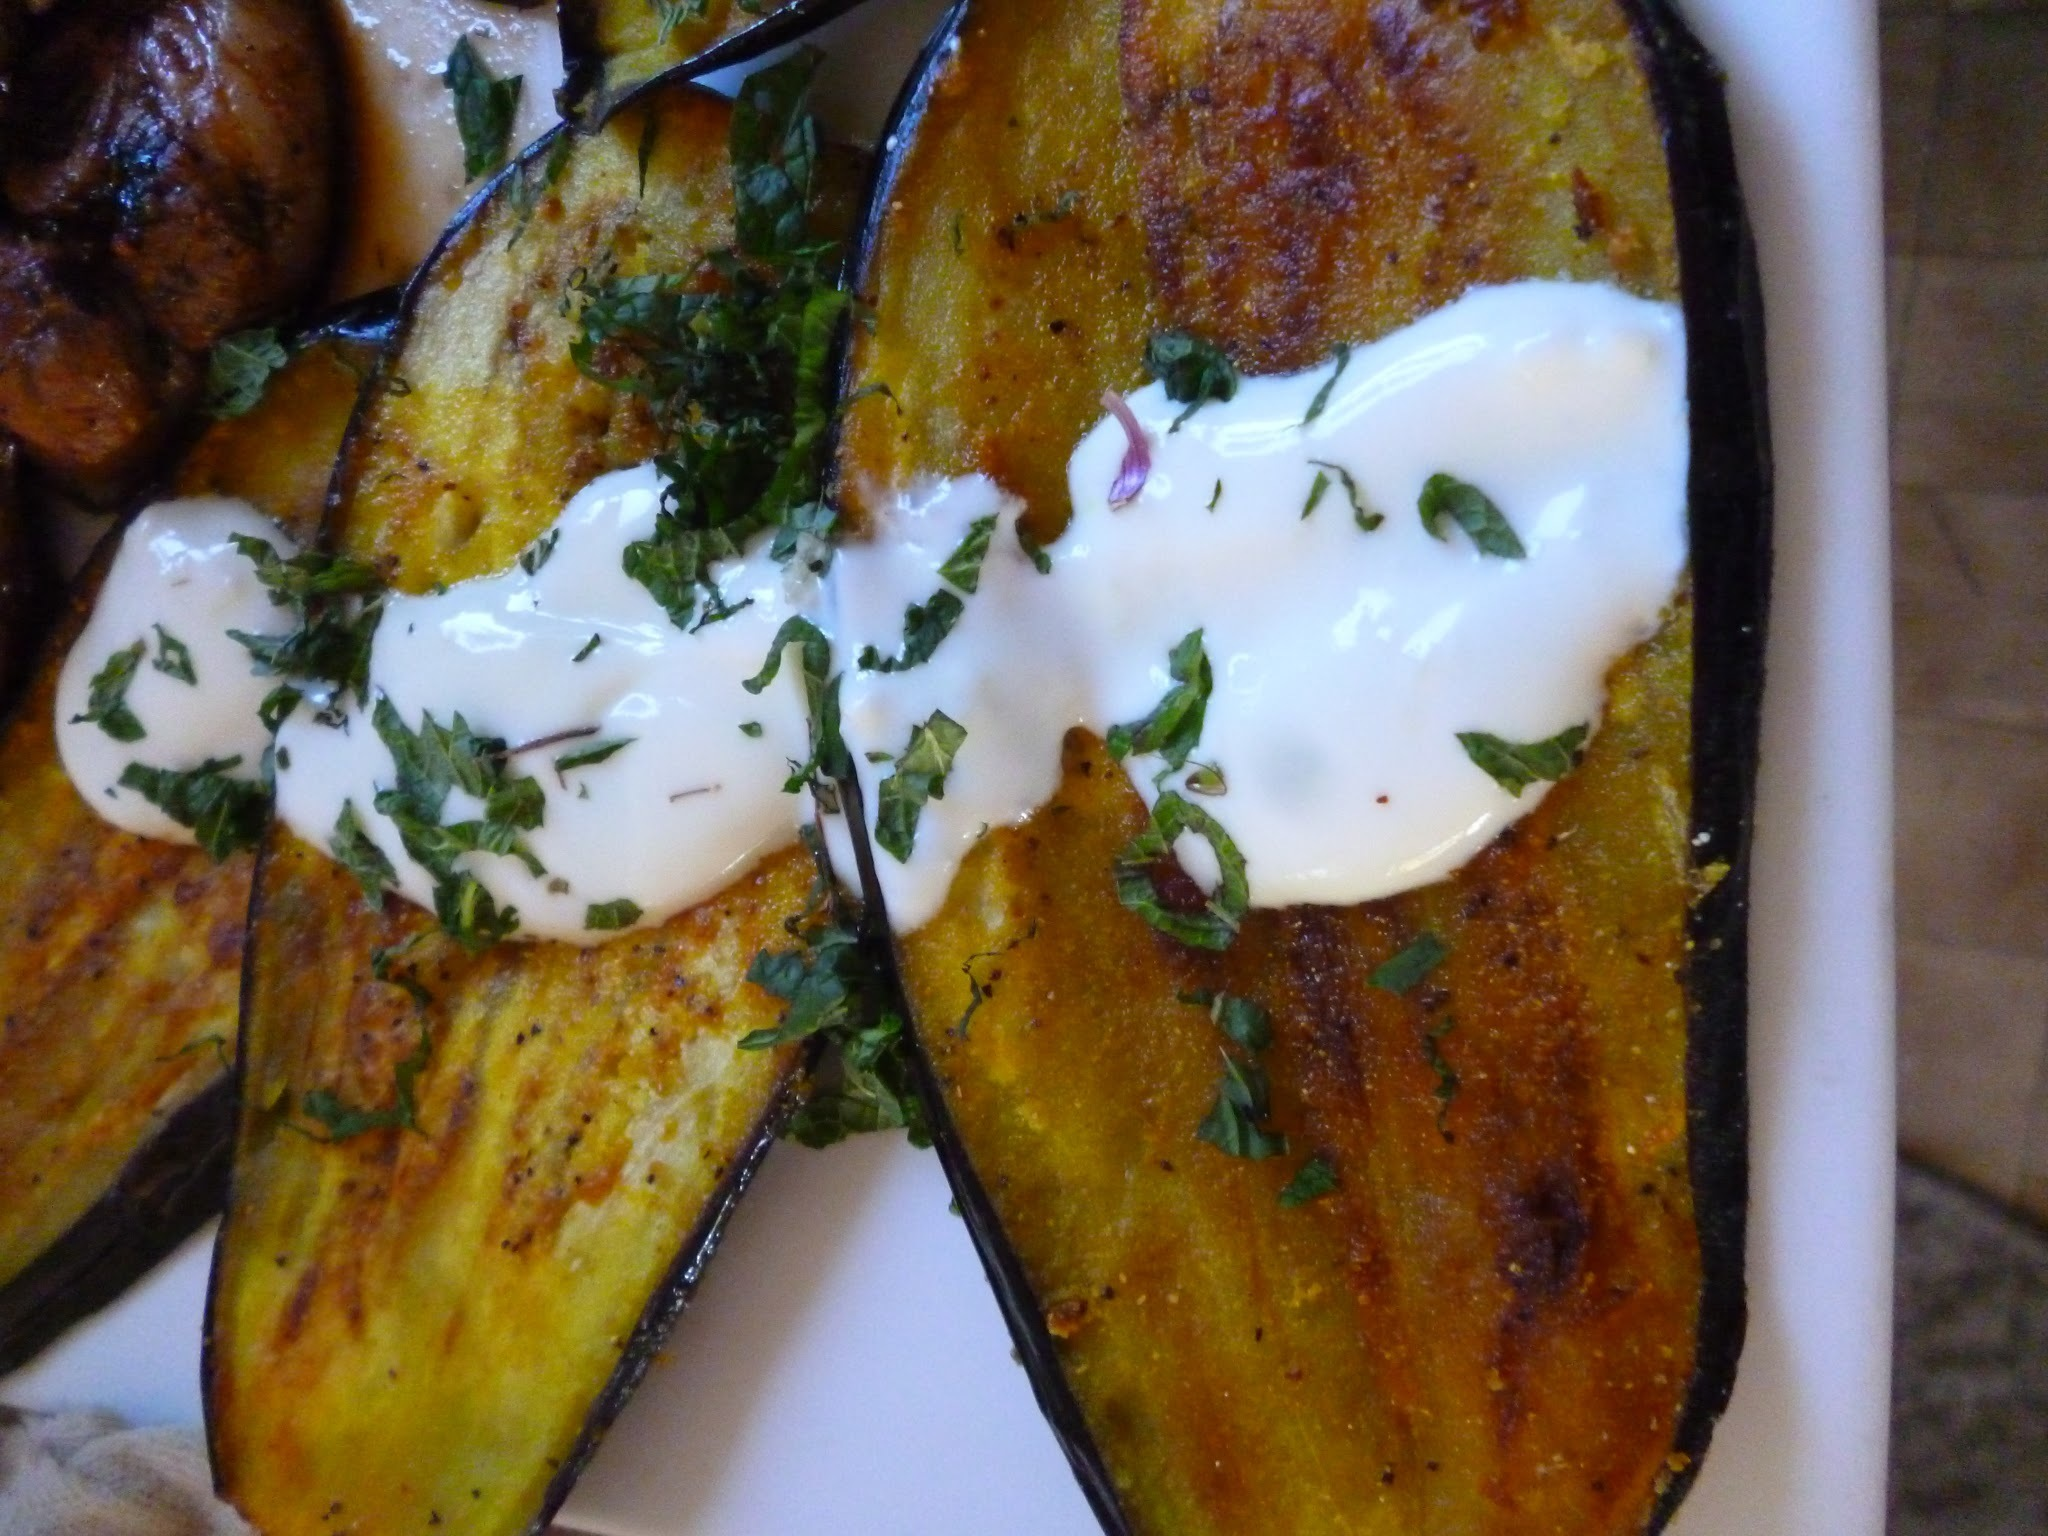 Eggplants: Queen of Vegetables  (or Fruits if you're a botanist)